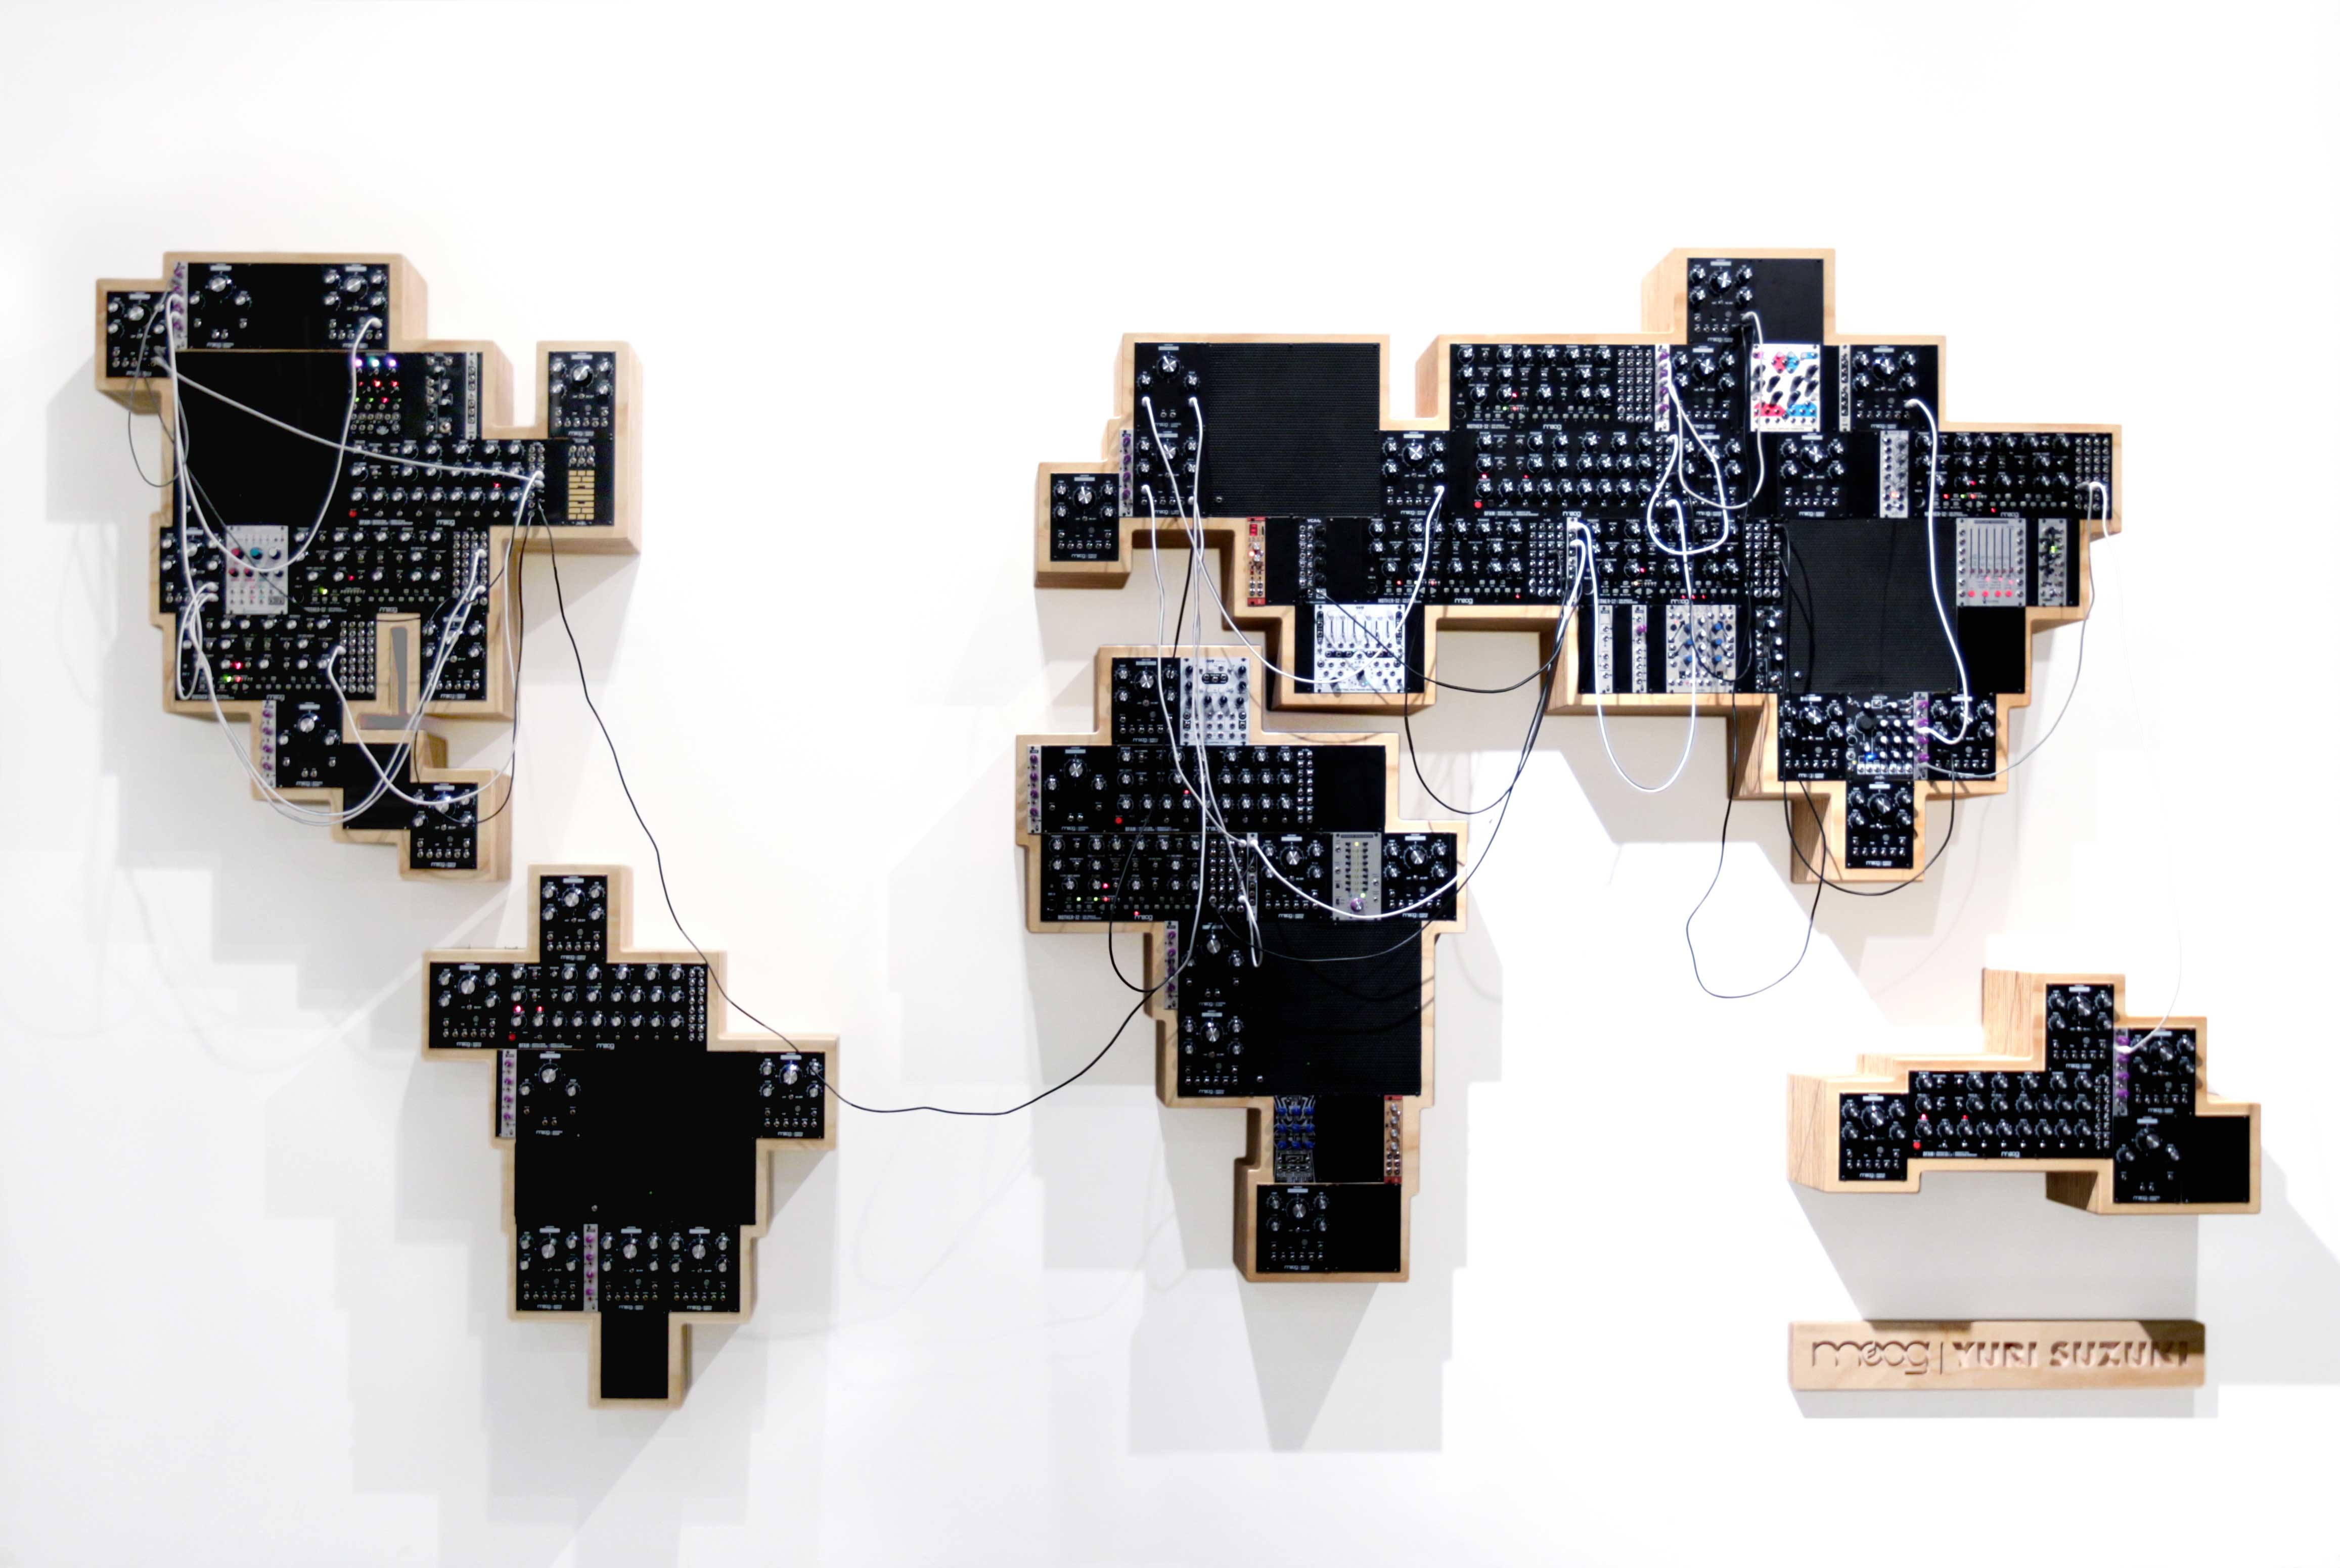 The Global Synthesizer Project